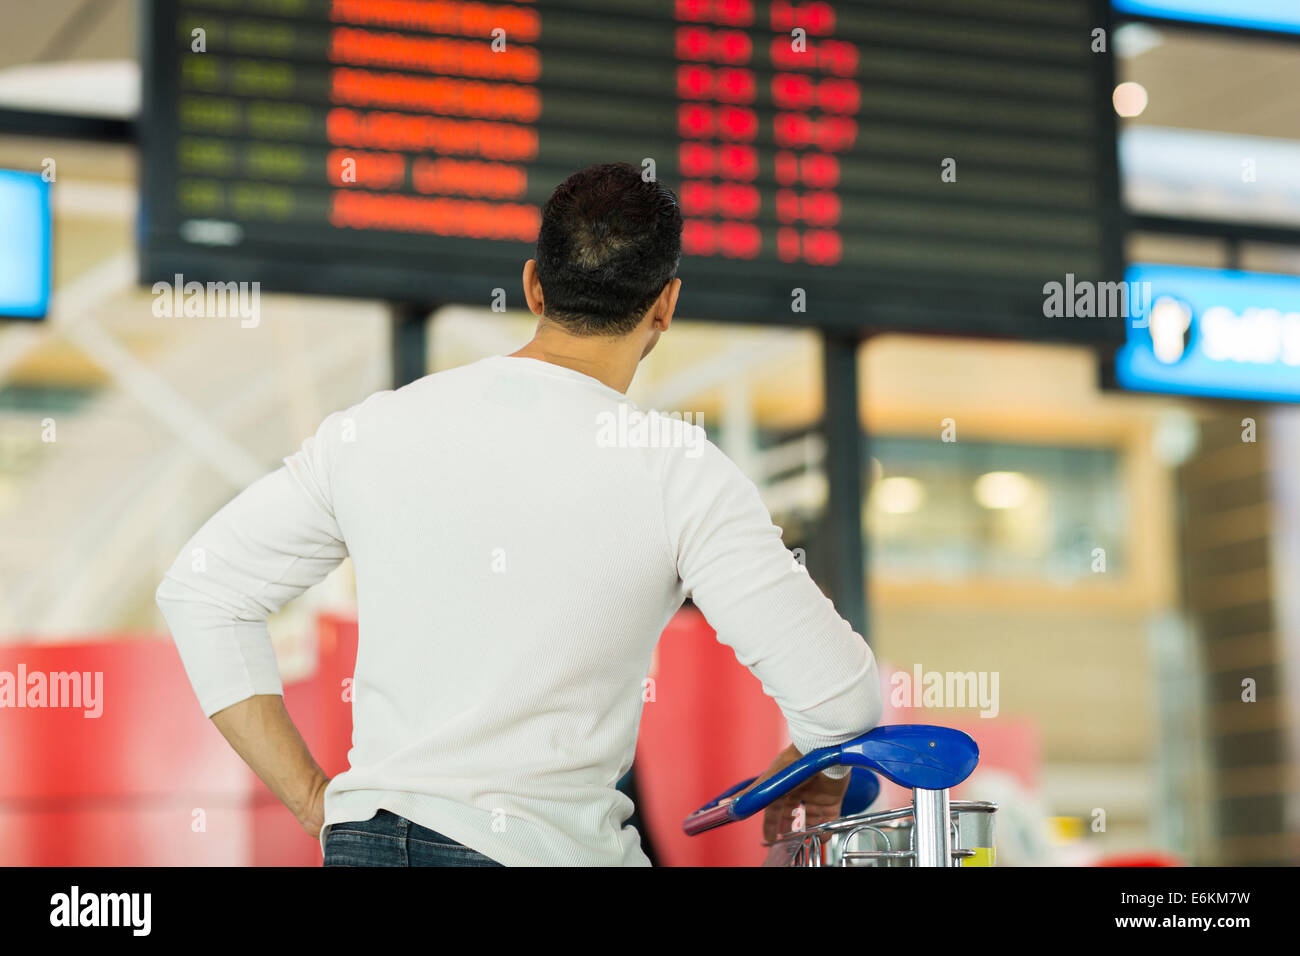 back view of traveller looking at airport information board - Stock Image